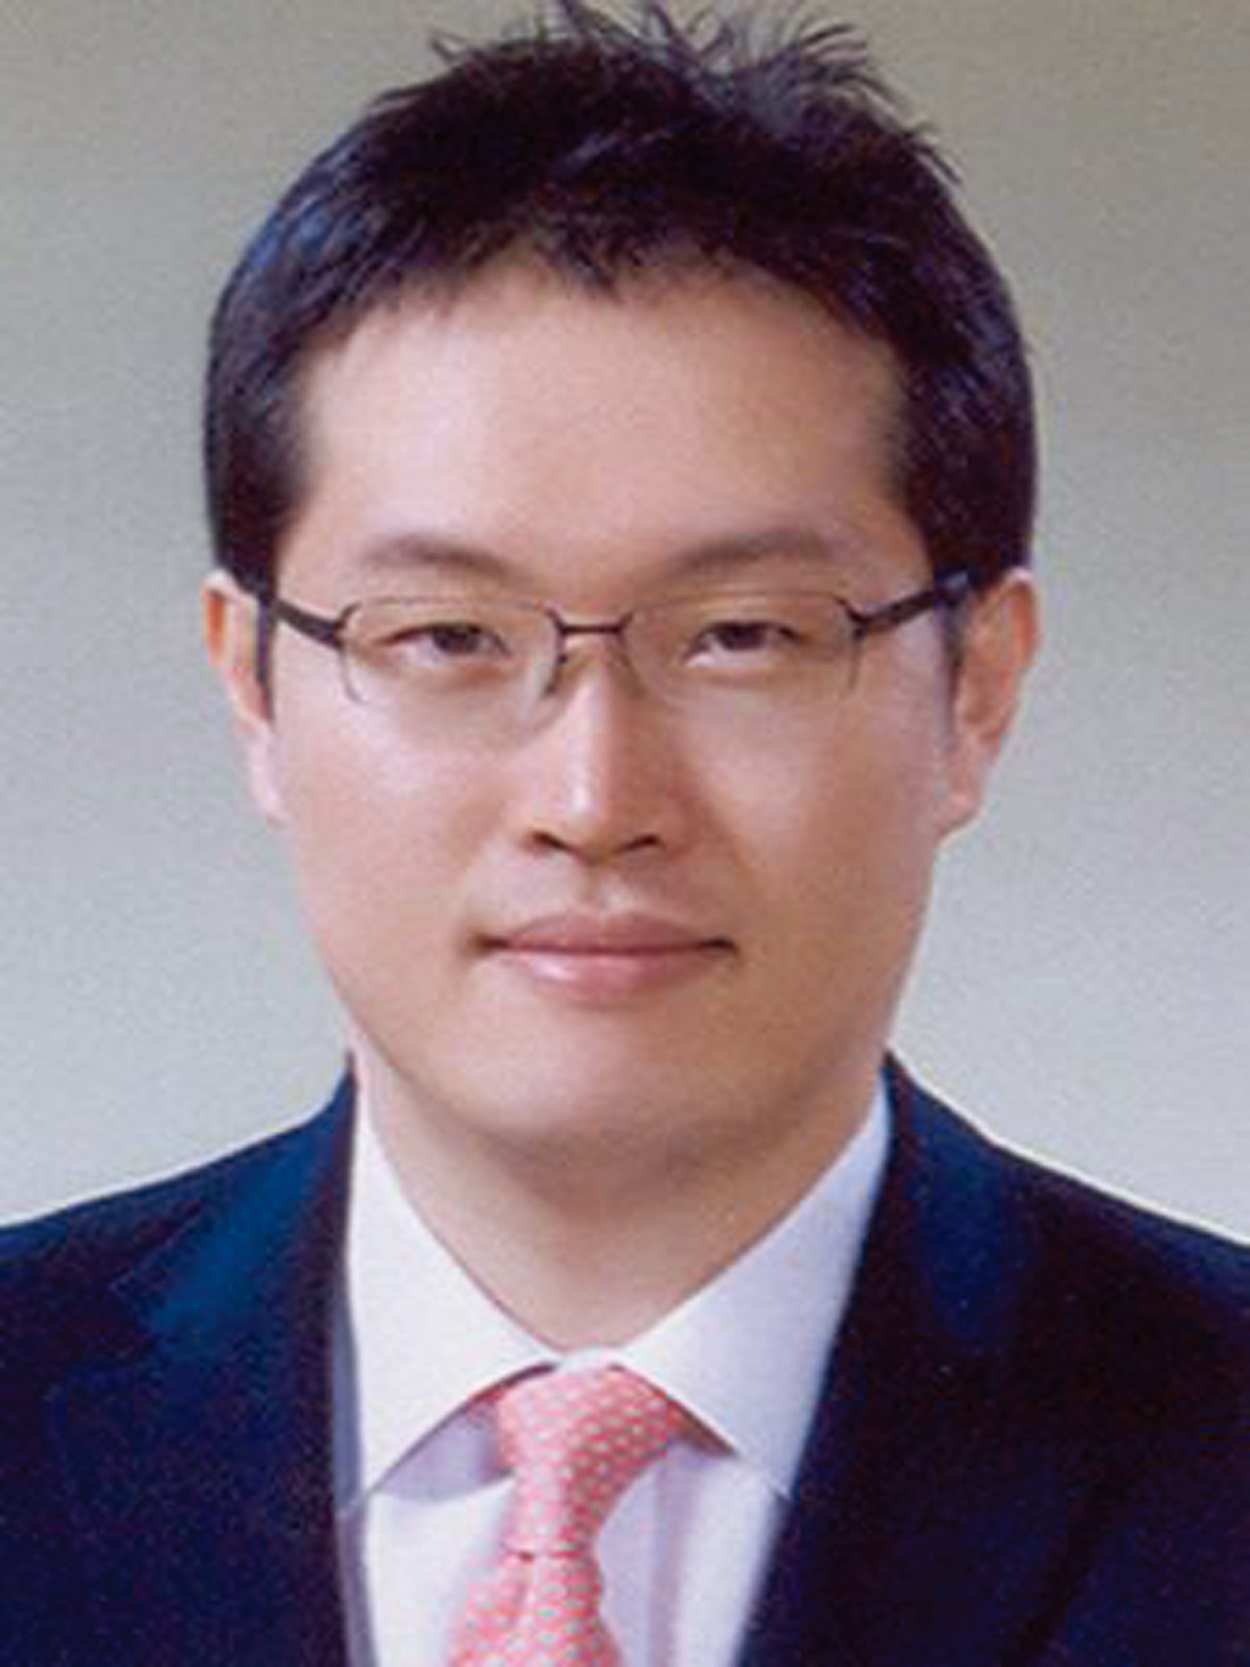 Photo of Doo Hee Han